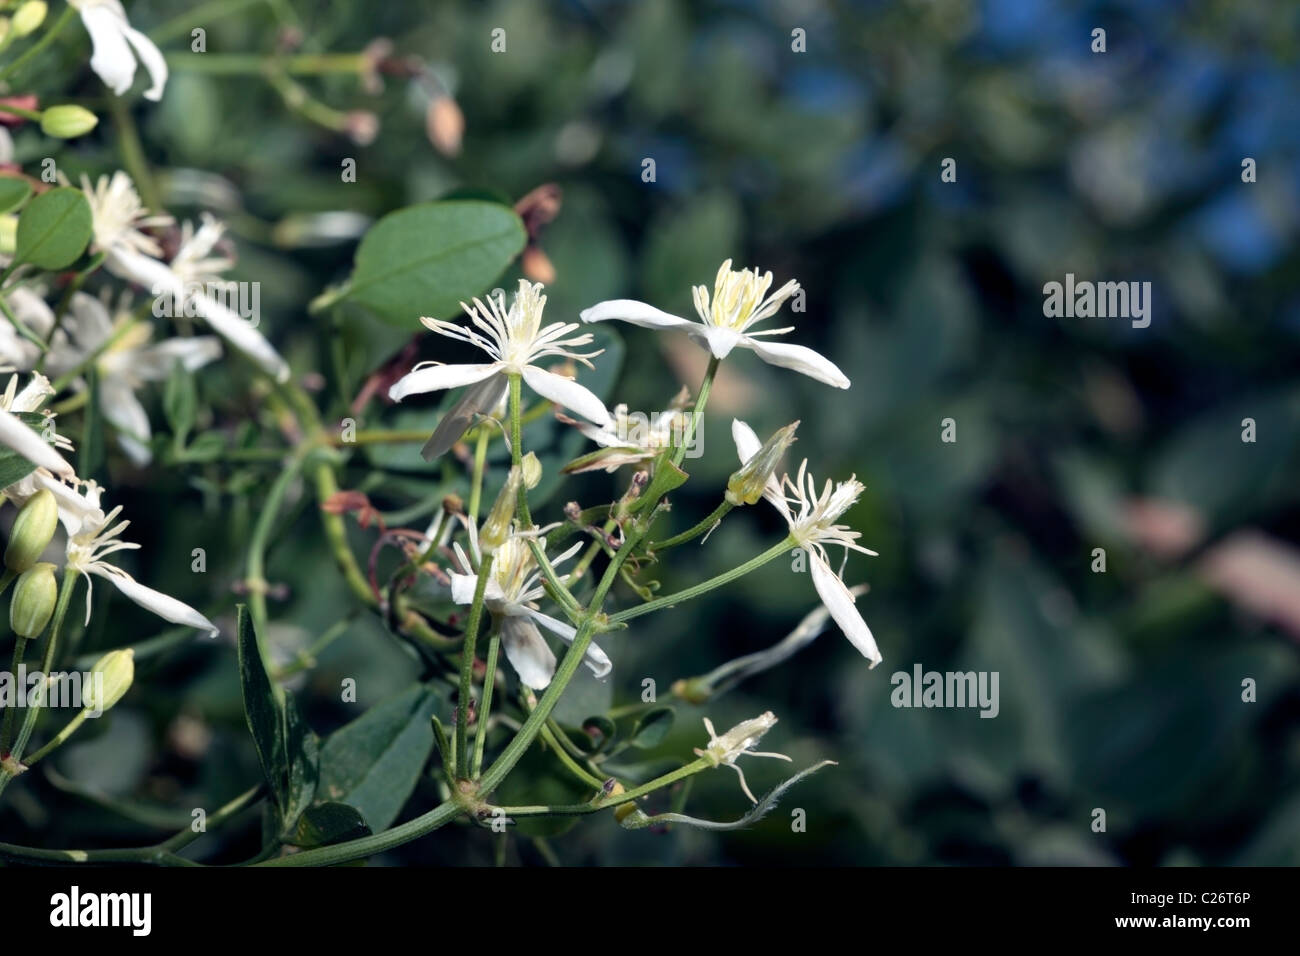 Close-up of Traveller's Joy/ Old Man's Beard/ Goatsbeard flowers- Clematis aistata- Family Ranunculaceae - Stock Image